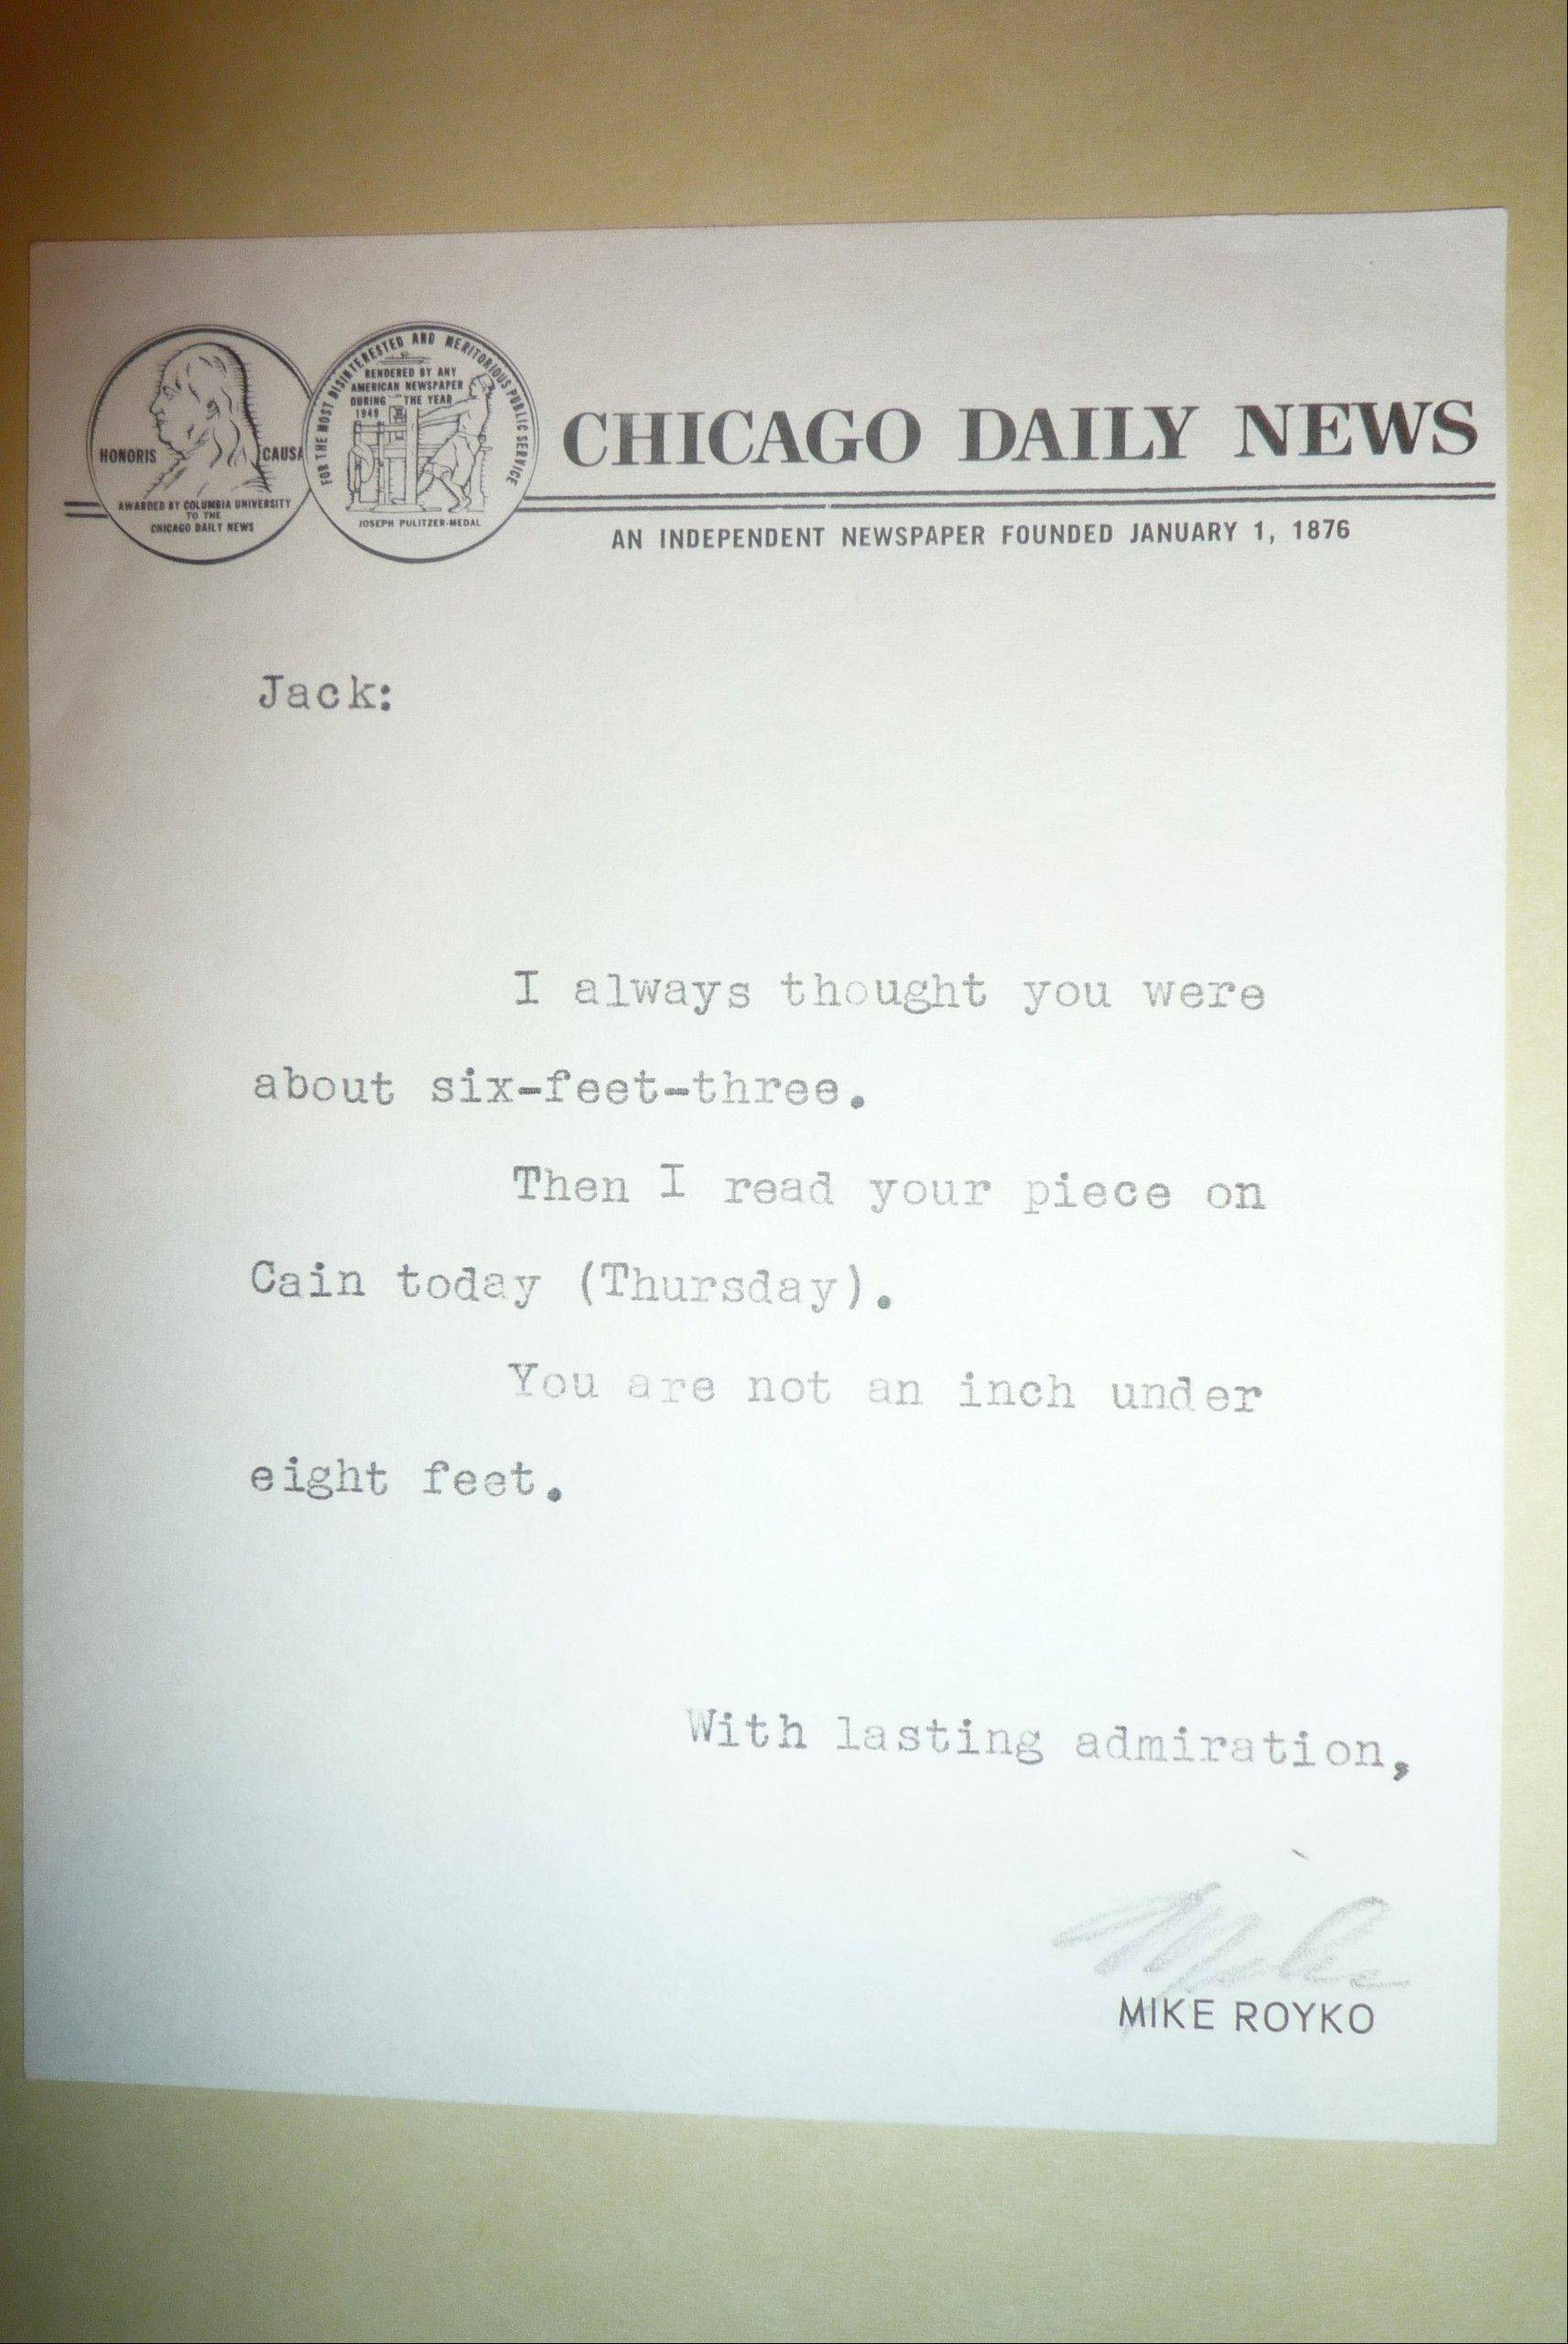 When Jack Mabley left the Chicago Daily News, he opened a spot for columnist Mike Royko. As a reporter who witnessed Mabley's work, Royko wrote the columnist this fan letter.